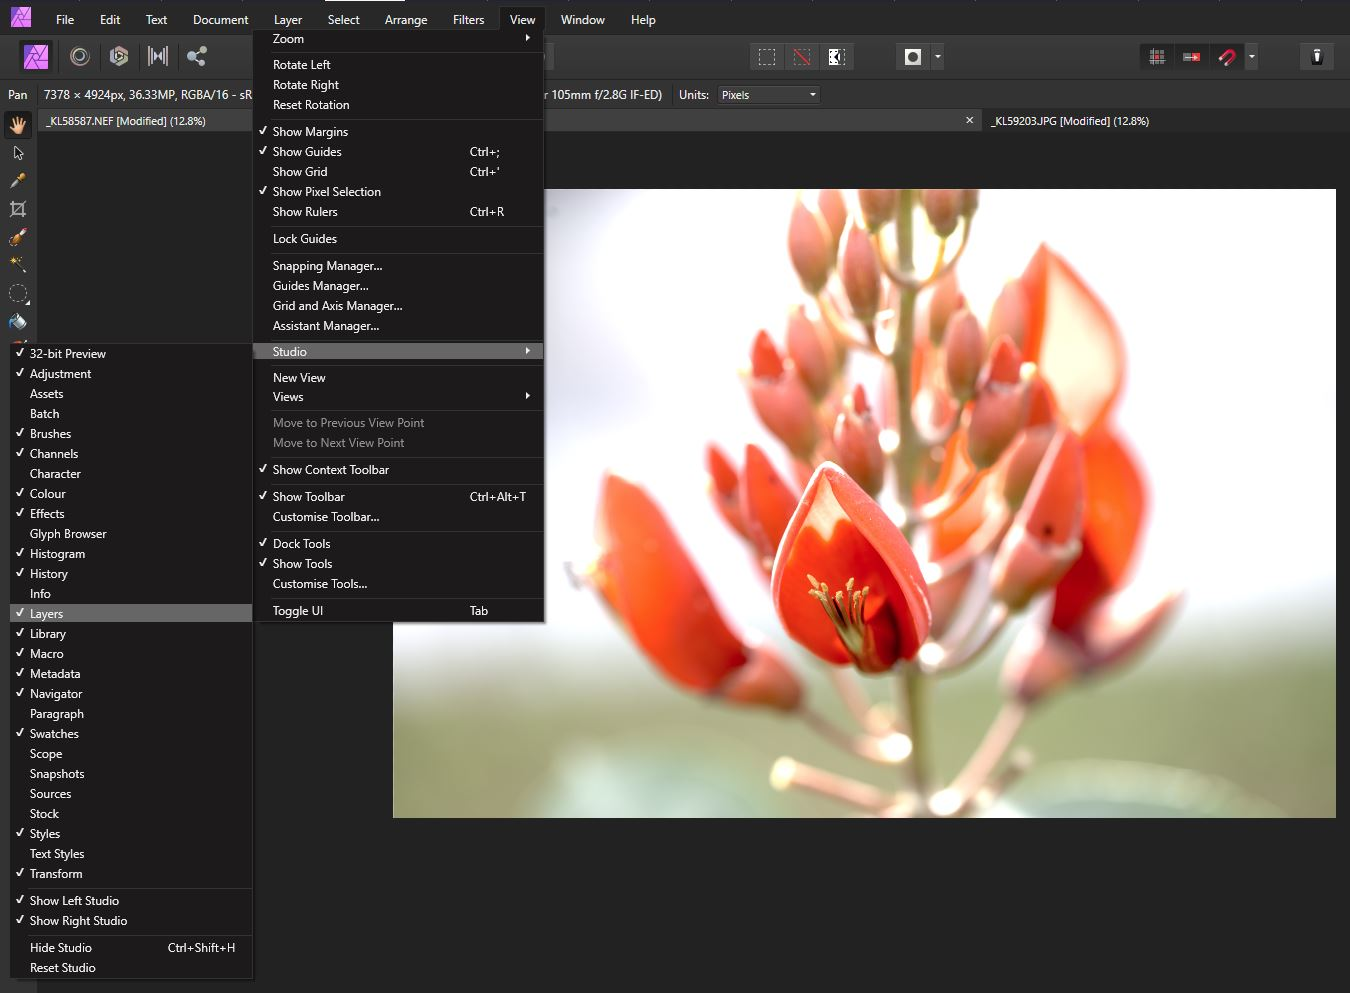 customizing panels in Affinity Photo